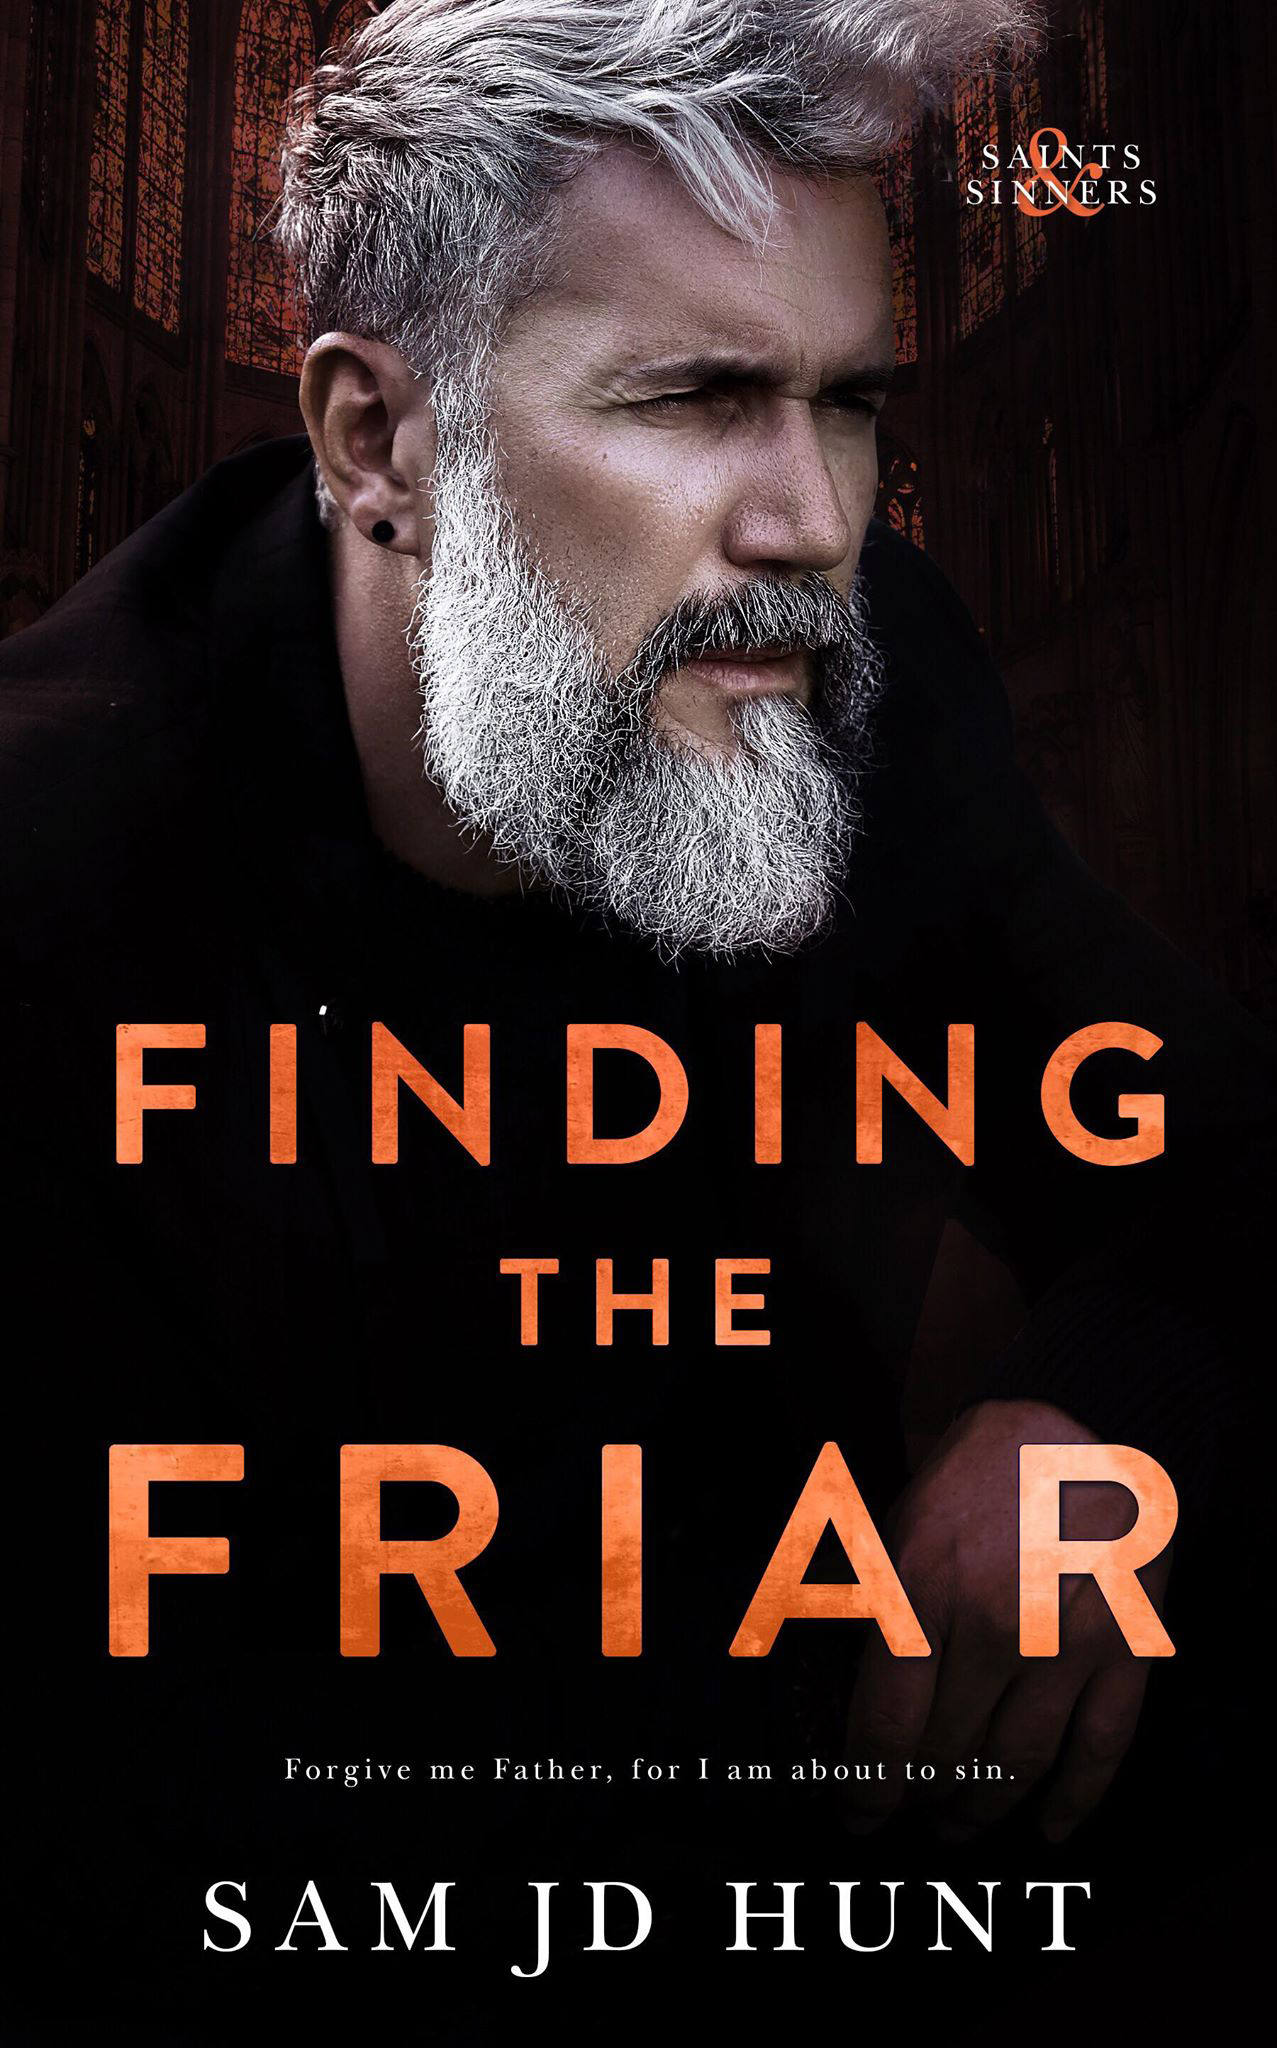 FINDING THE FRIAR